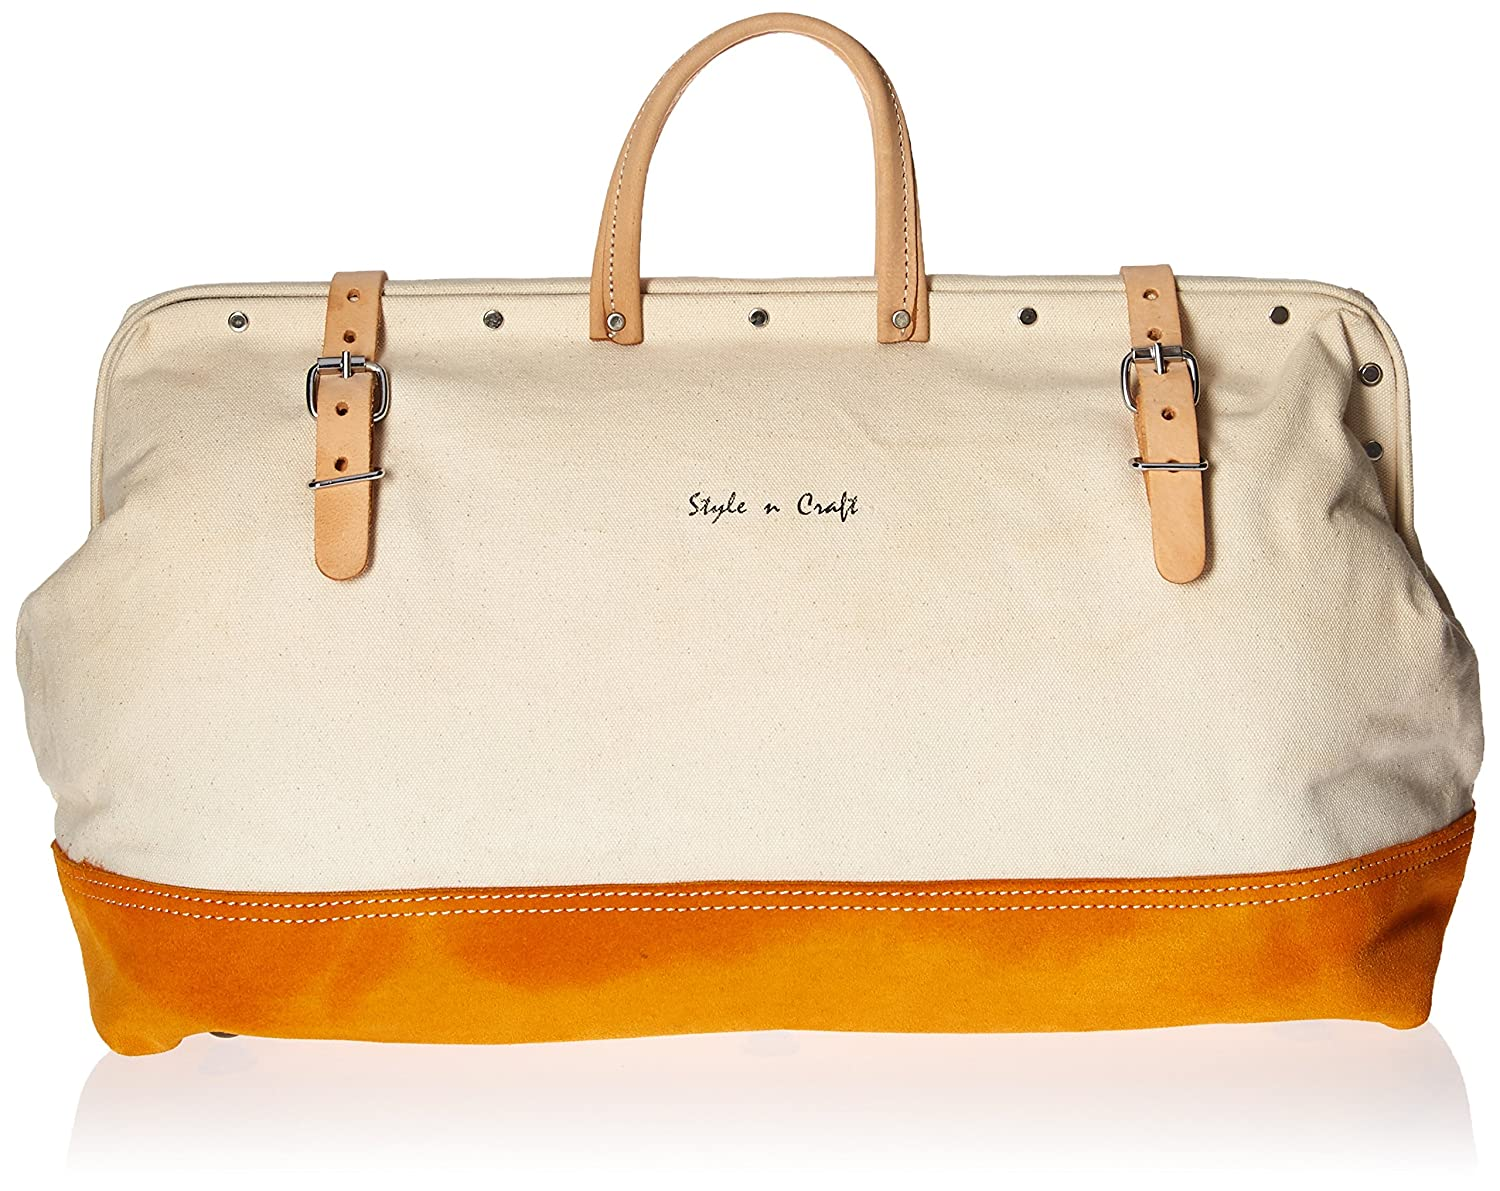 Style n Craft 97516 20 Mason's Tool Bag in Canvas Suede Leather Combination